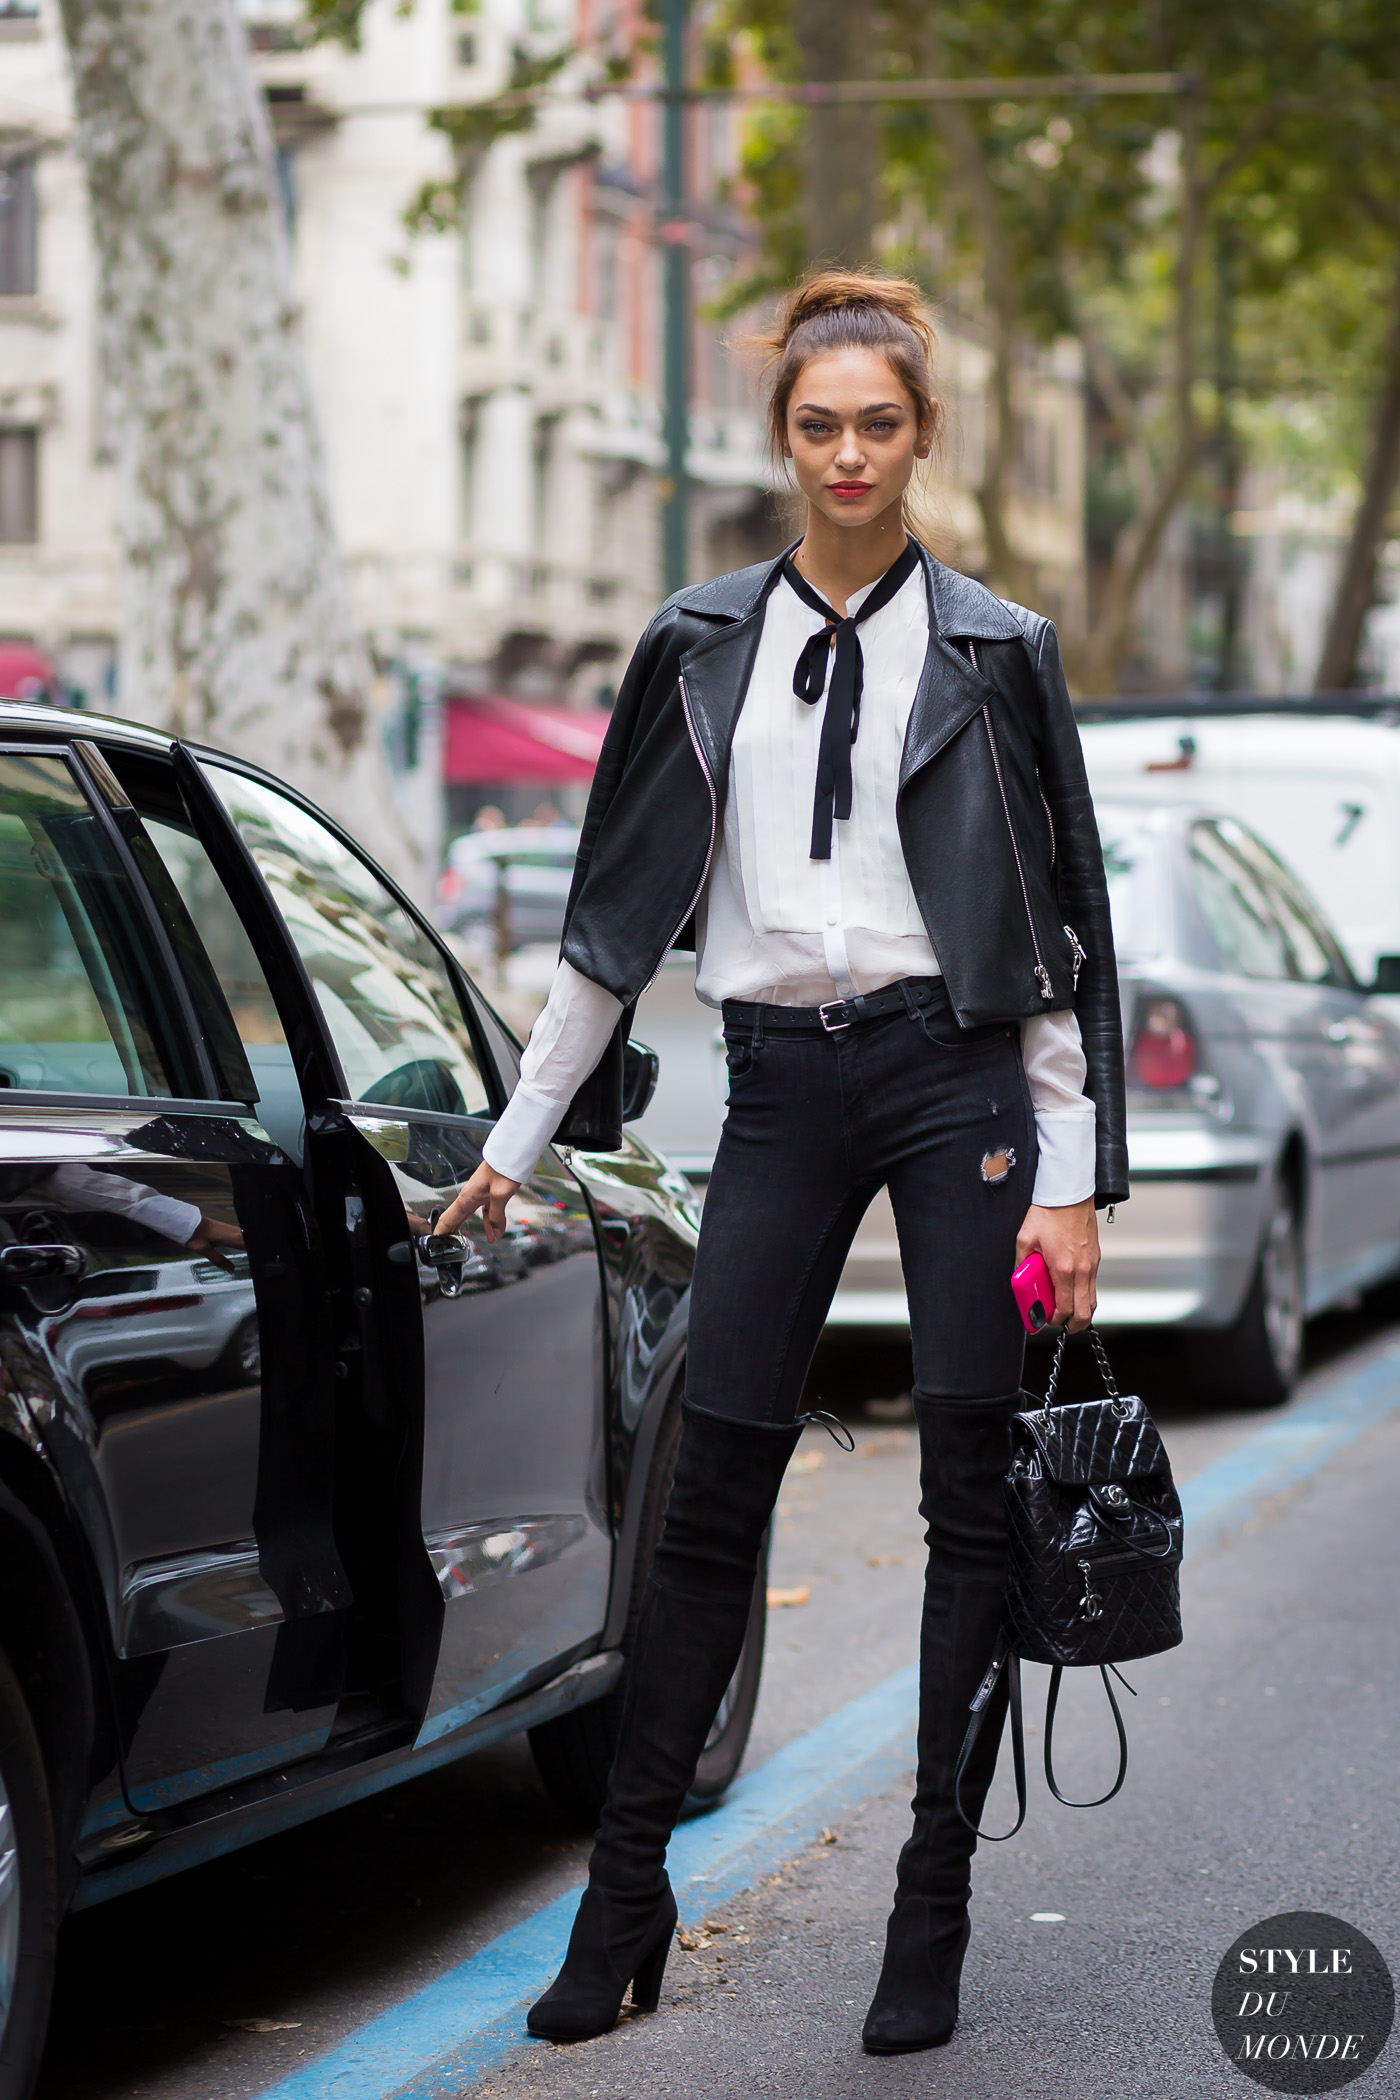 Zhenya Katava Street Style Street Fashion Streetsnaps by STYLEDUMONDE Street Style Fashion Photography